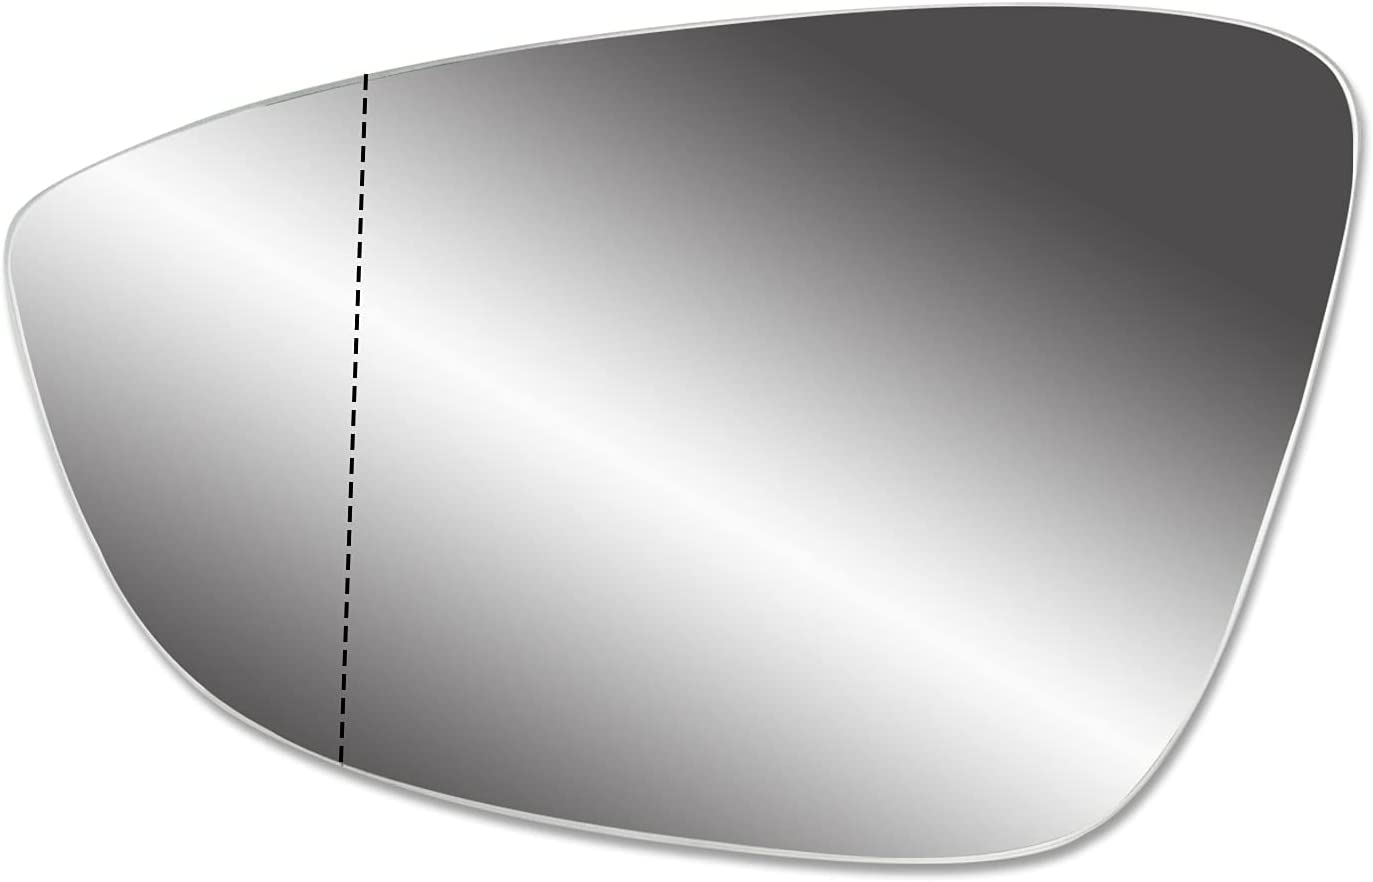 2021 TIKSCIENCE Driver Side Heated Mirror Limited Special Price Glass Fit Volkswagen V for